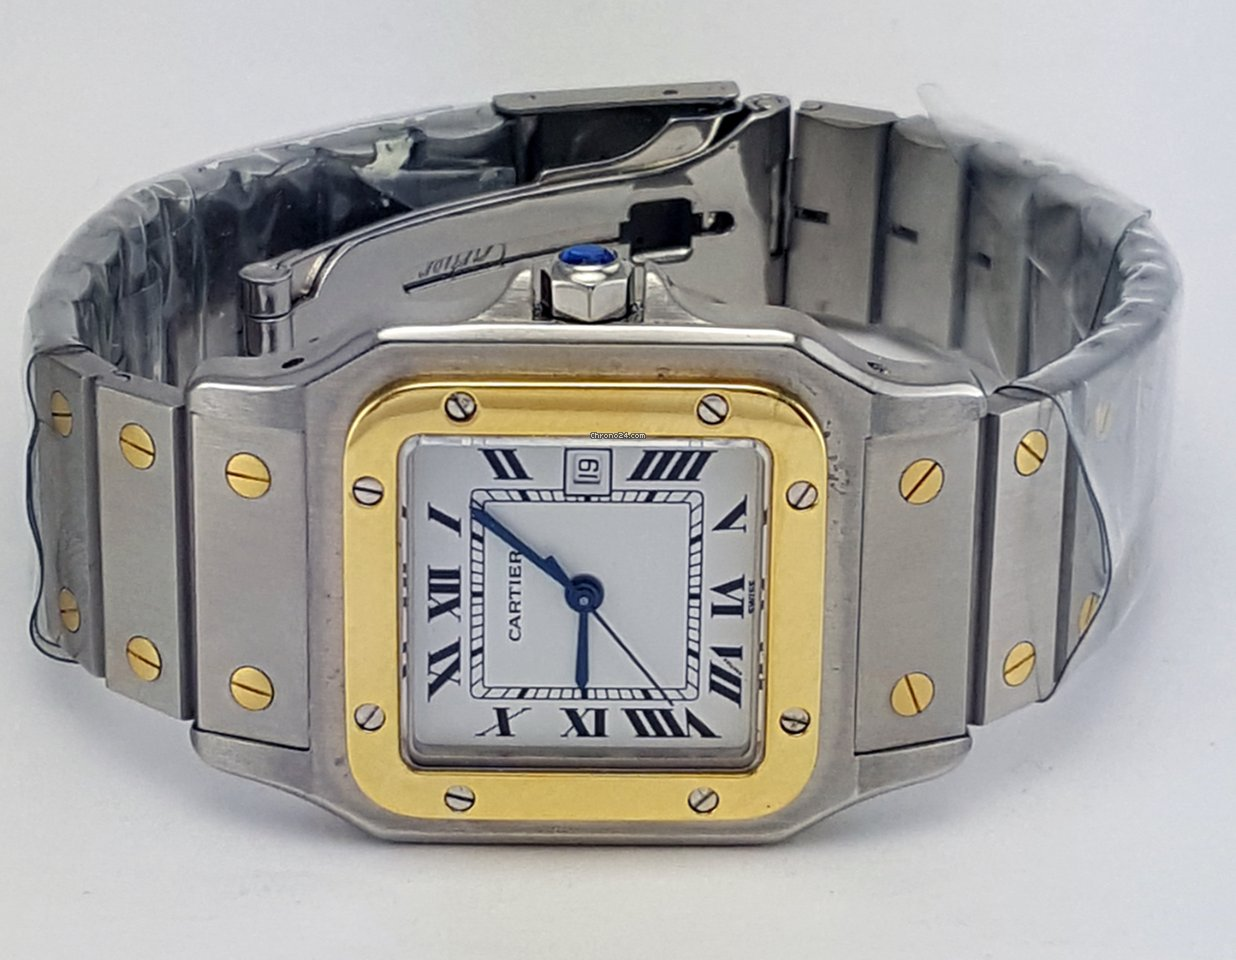 9bba3bfe7934 Cartier Santos Galbee Two Tone 29mm REF 4812 for Price on request for sale  from a Trusted Seller on Chrono24